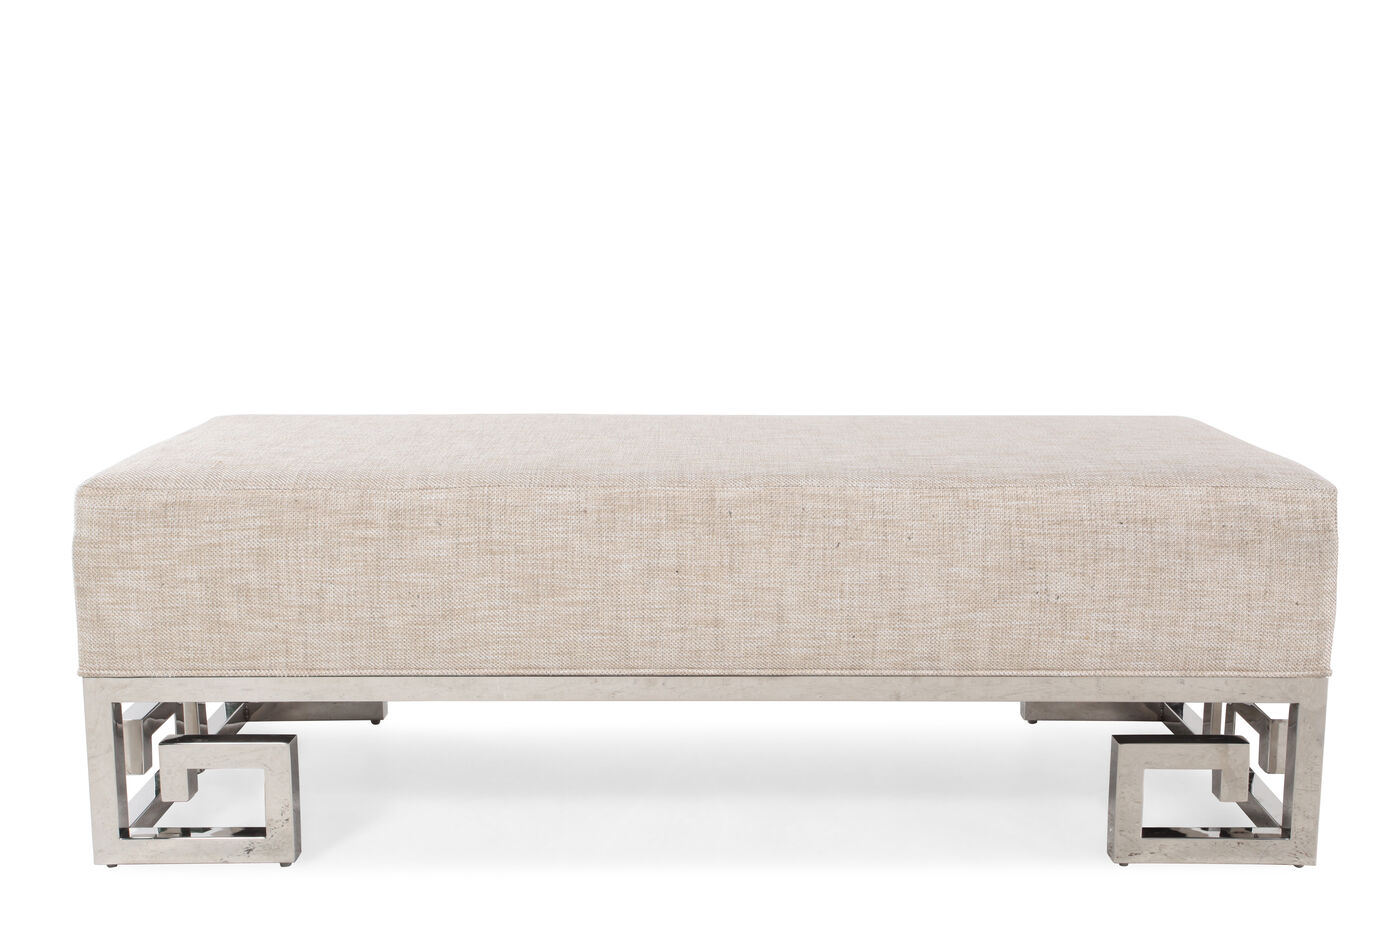 Bench By Bed: Bernhardt Soho Luxe Bed Bench